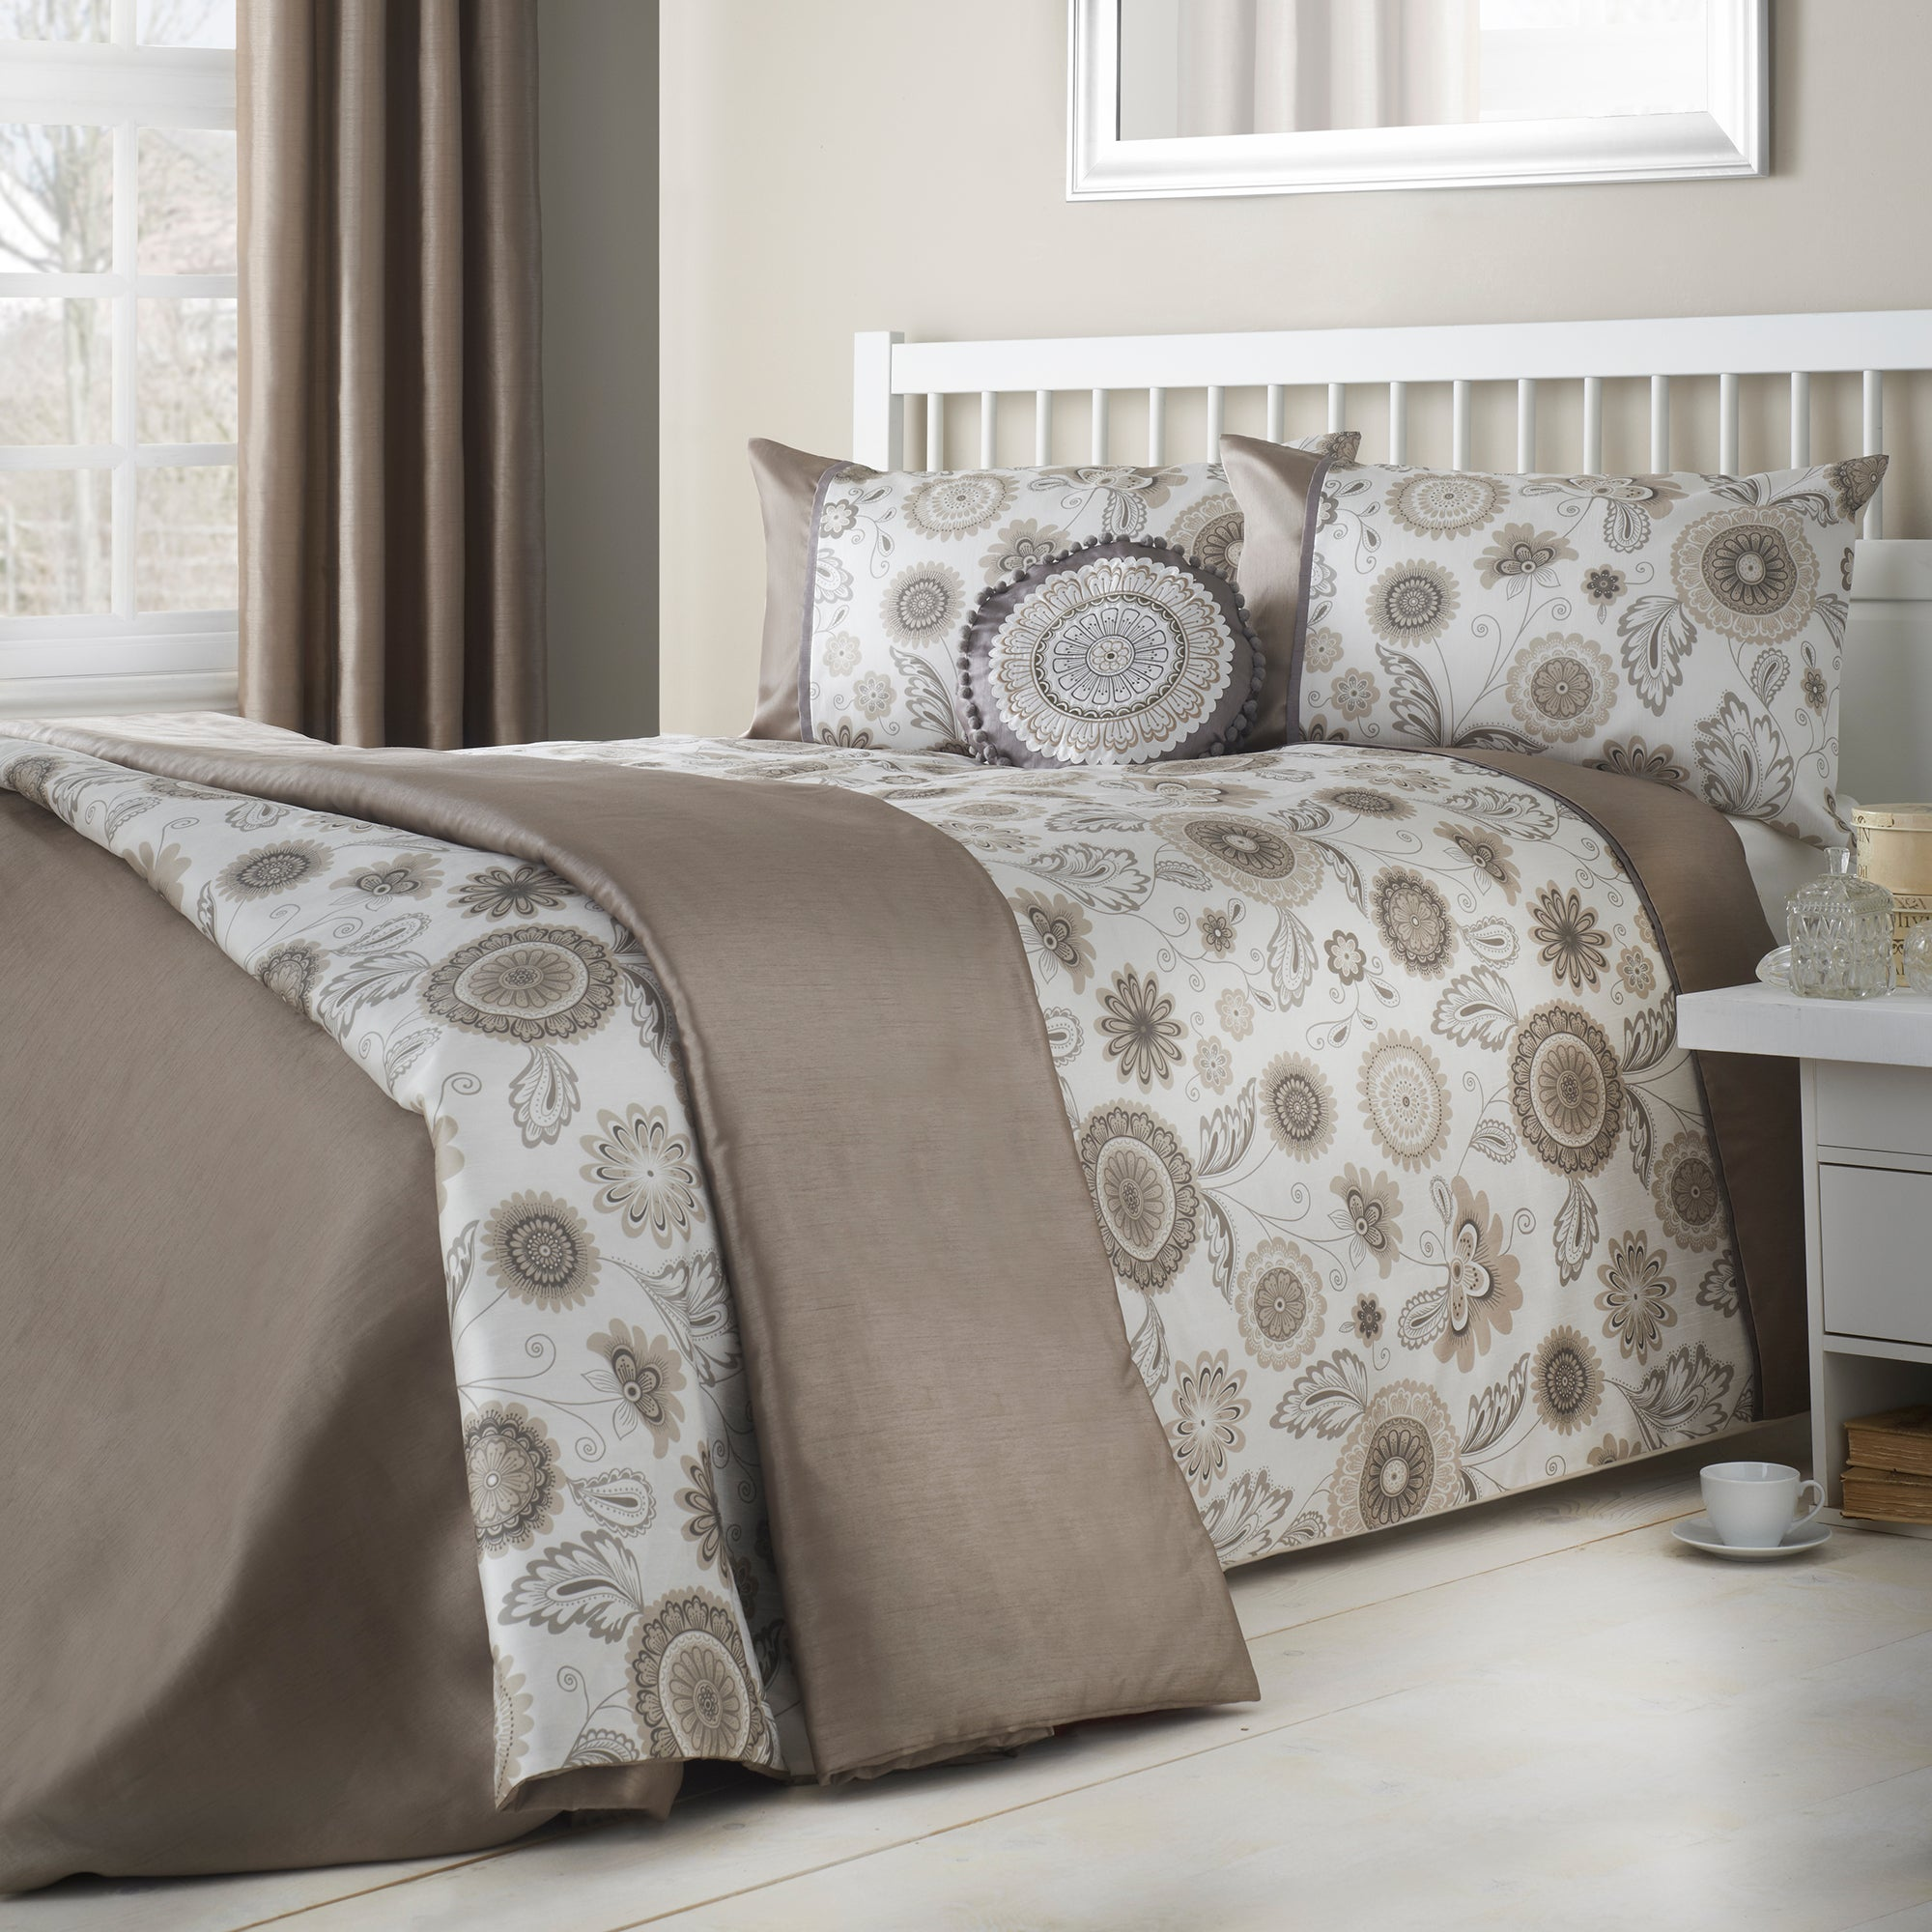 Natural Folk Floral Bedlinen Collection